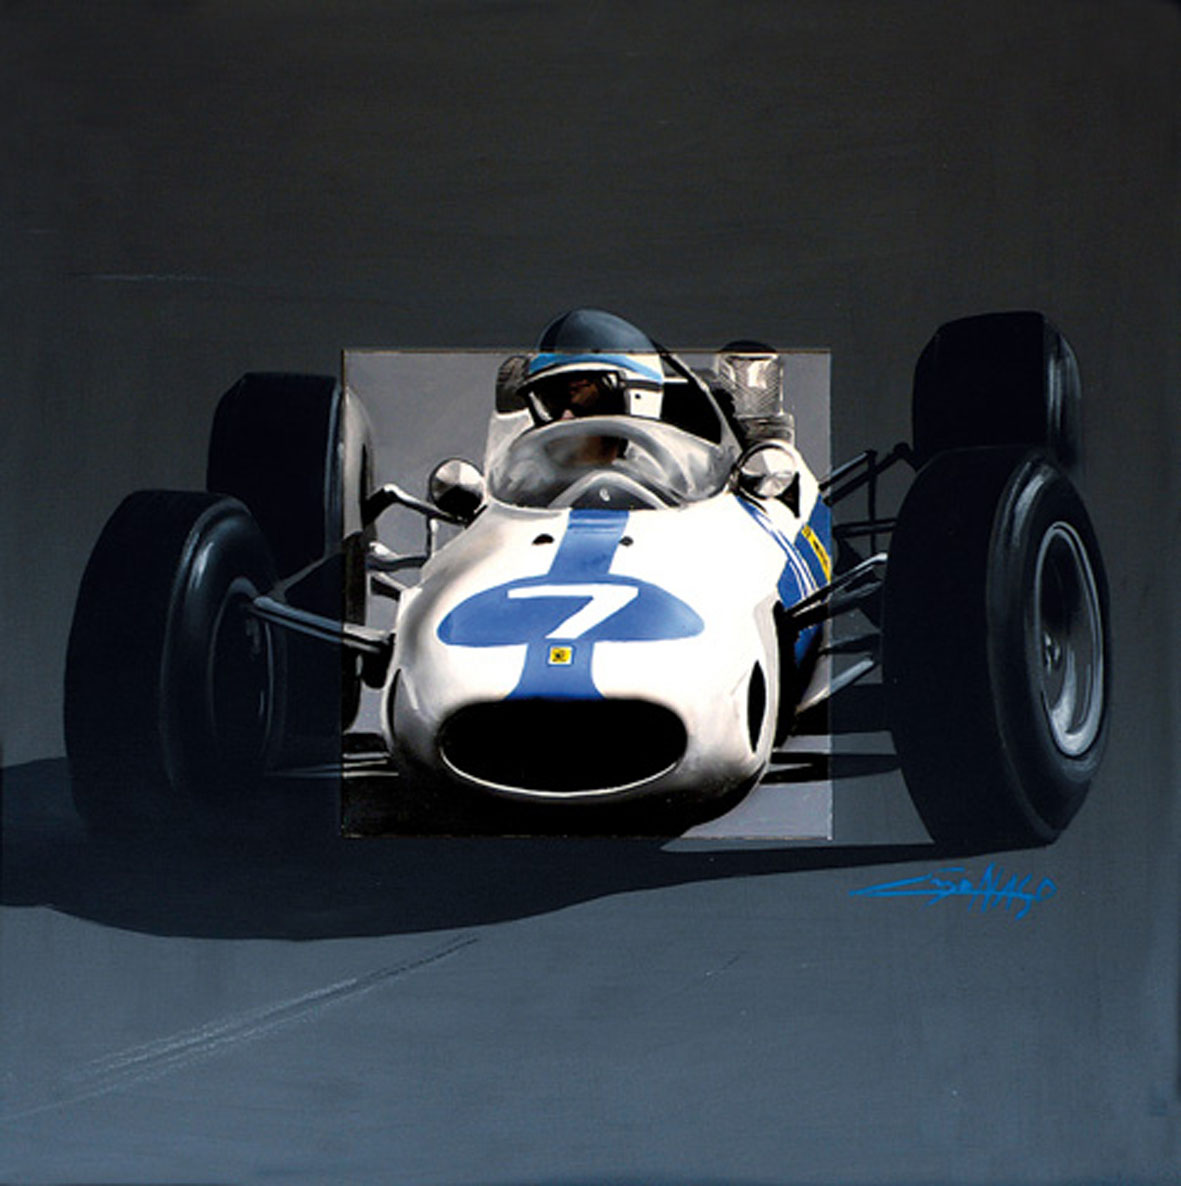 163 F1 Surtees - 2008 - 80x80 - Author's collection